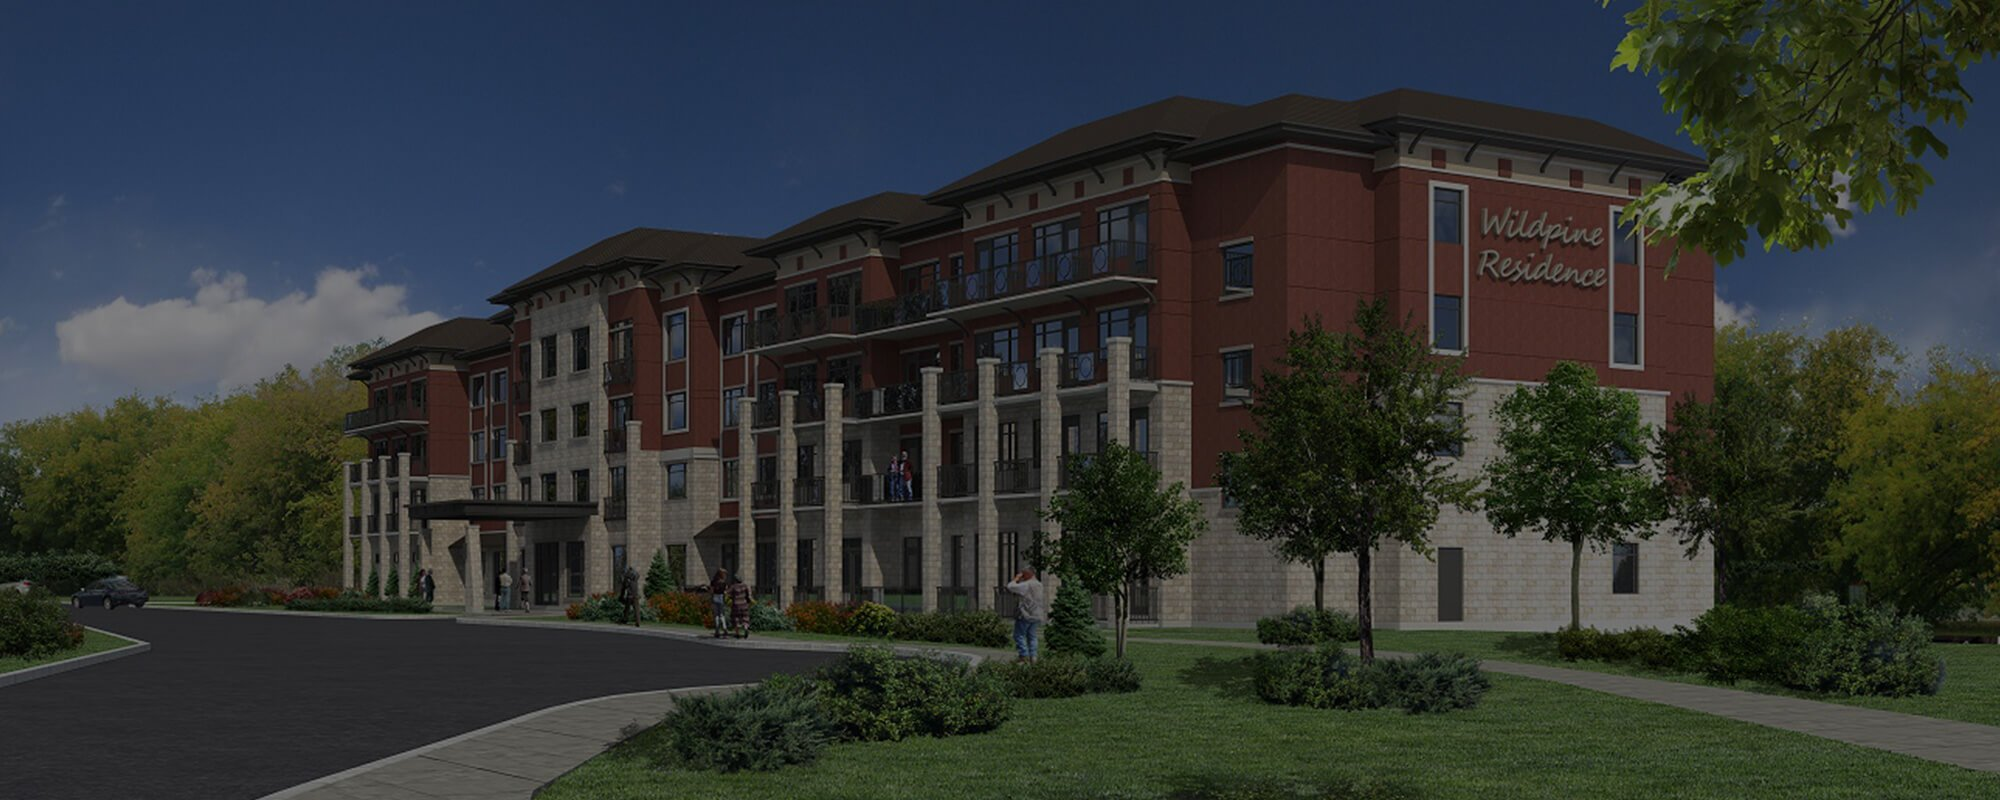 A 3D rendering of the finished Wildpine Residence building.